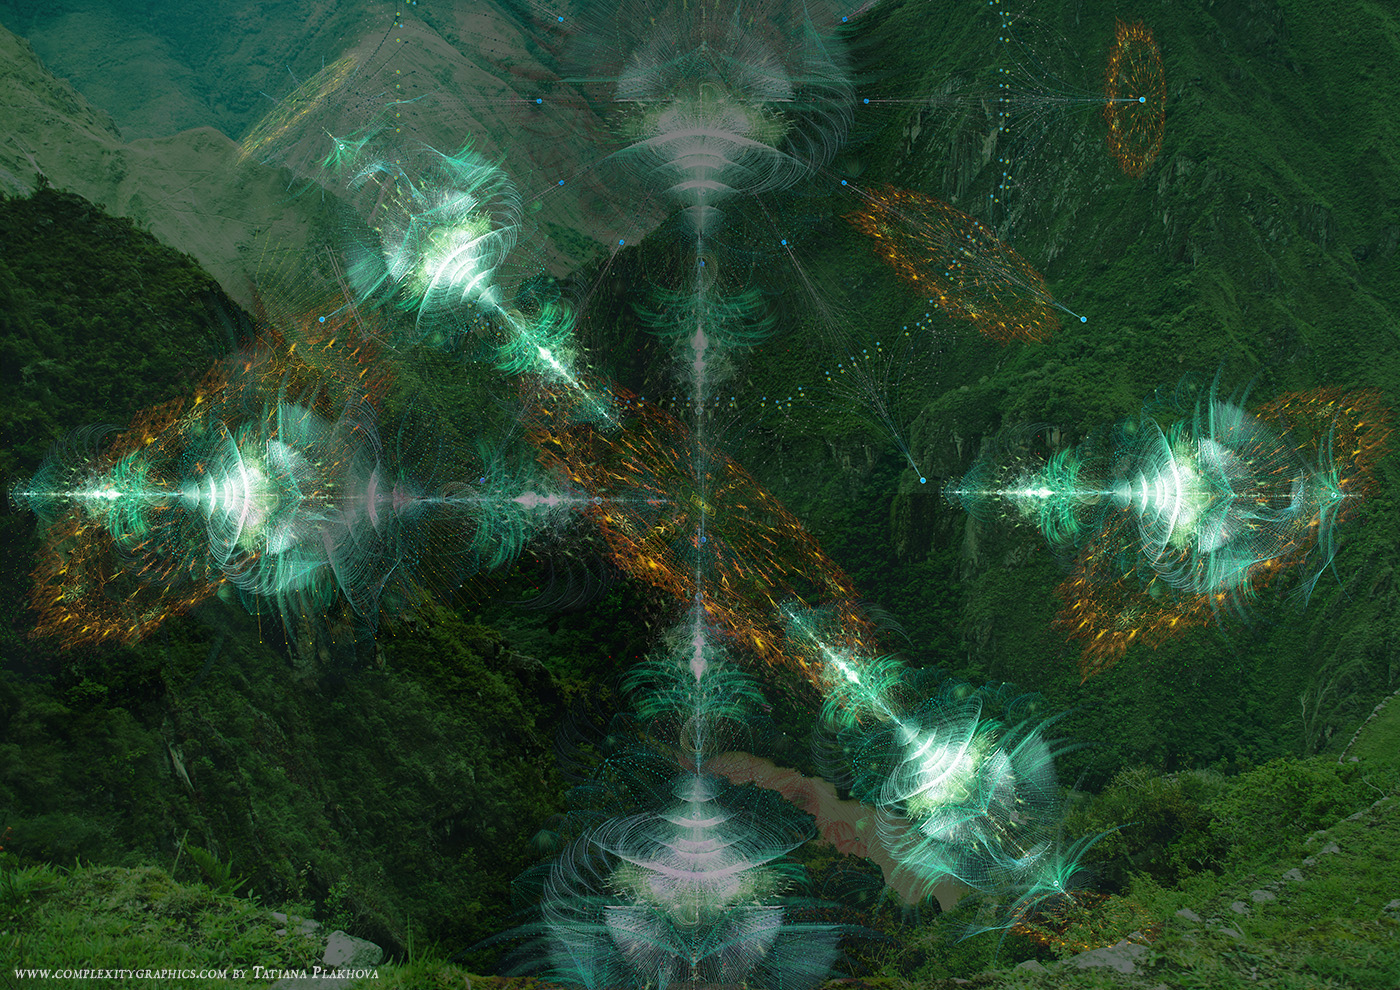 connection Love spirit unity One Two inspiration creation healing Harmony